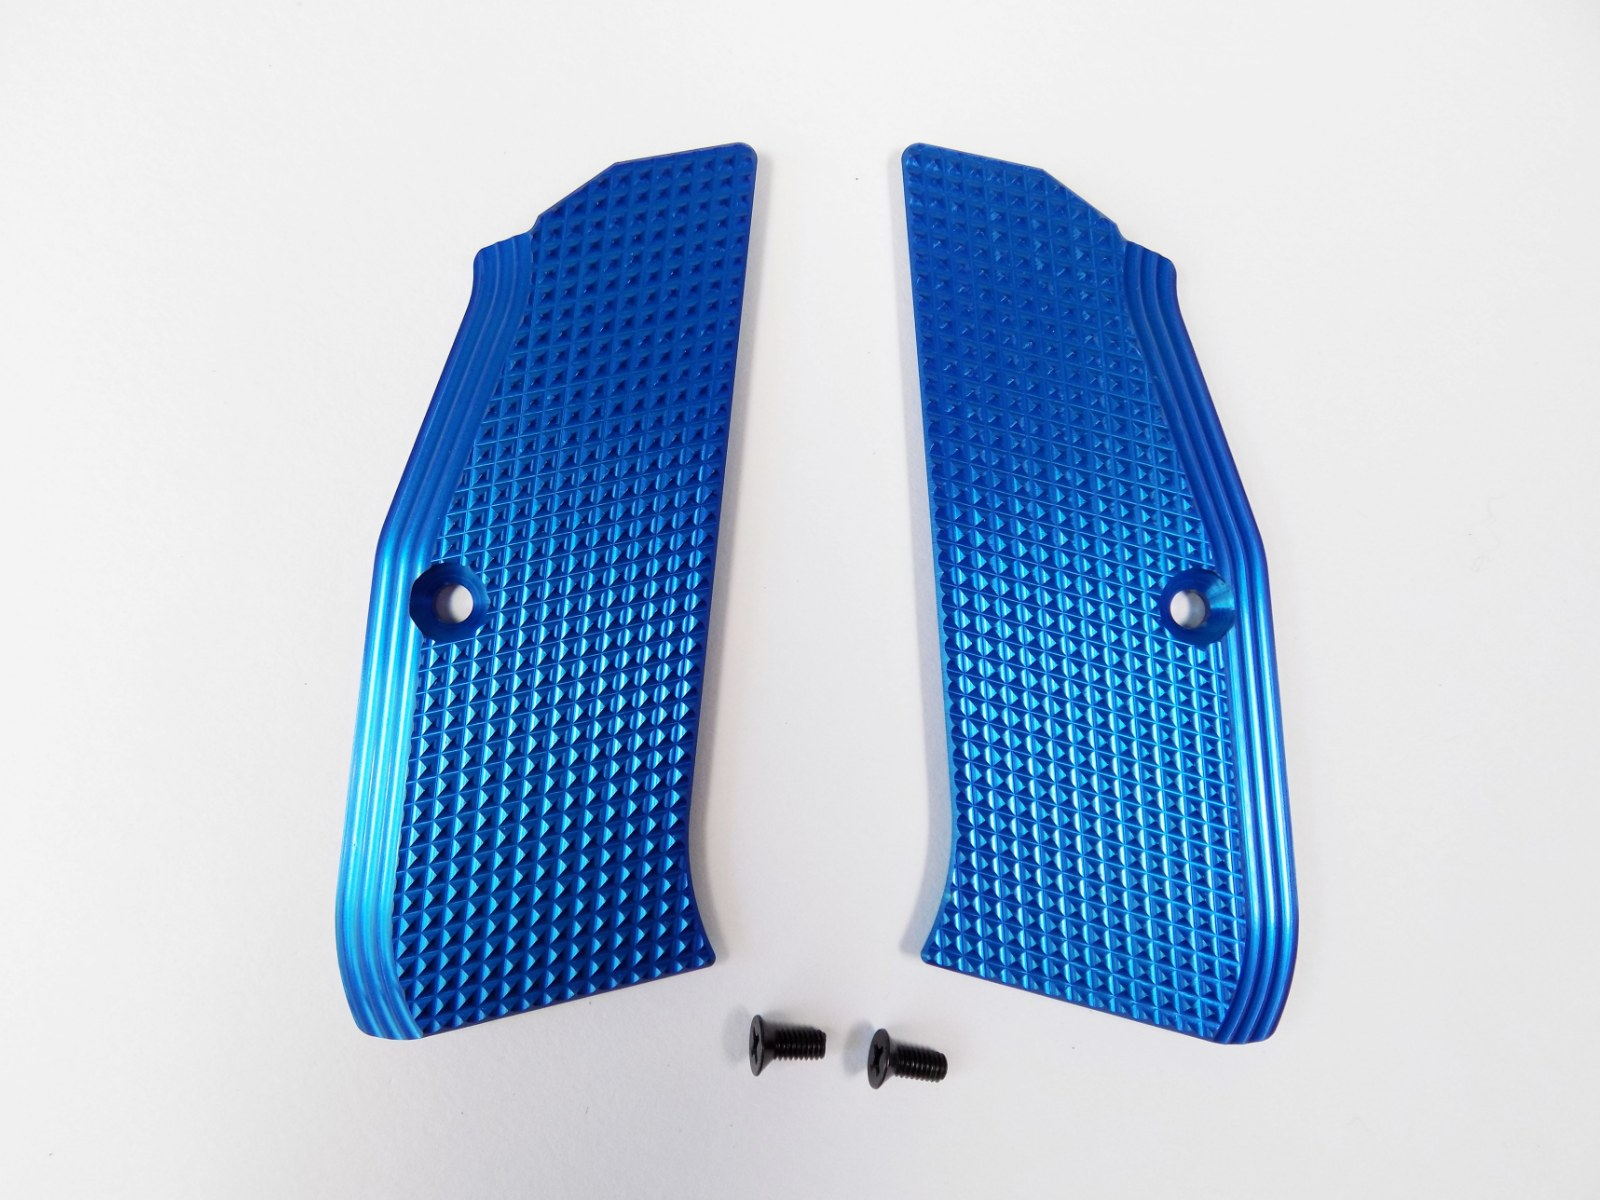 ZENDL® CZ 75 High Quality Grooved Grips - BLUE